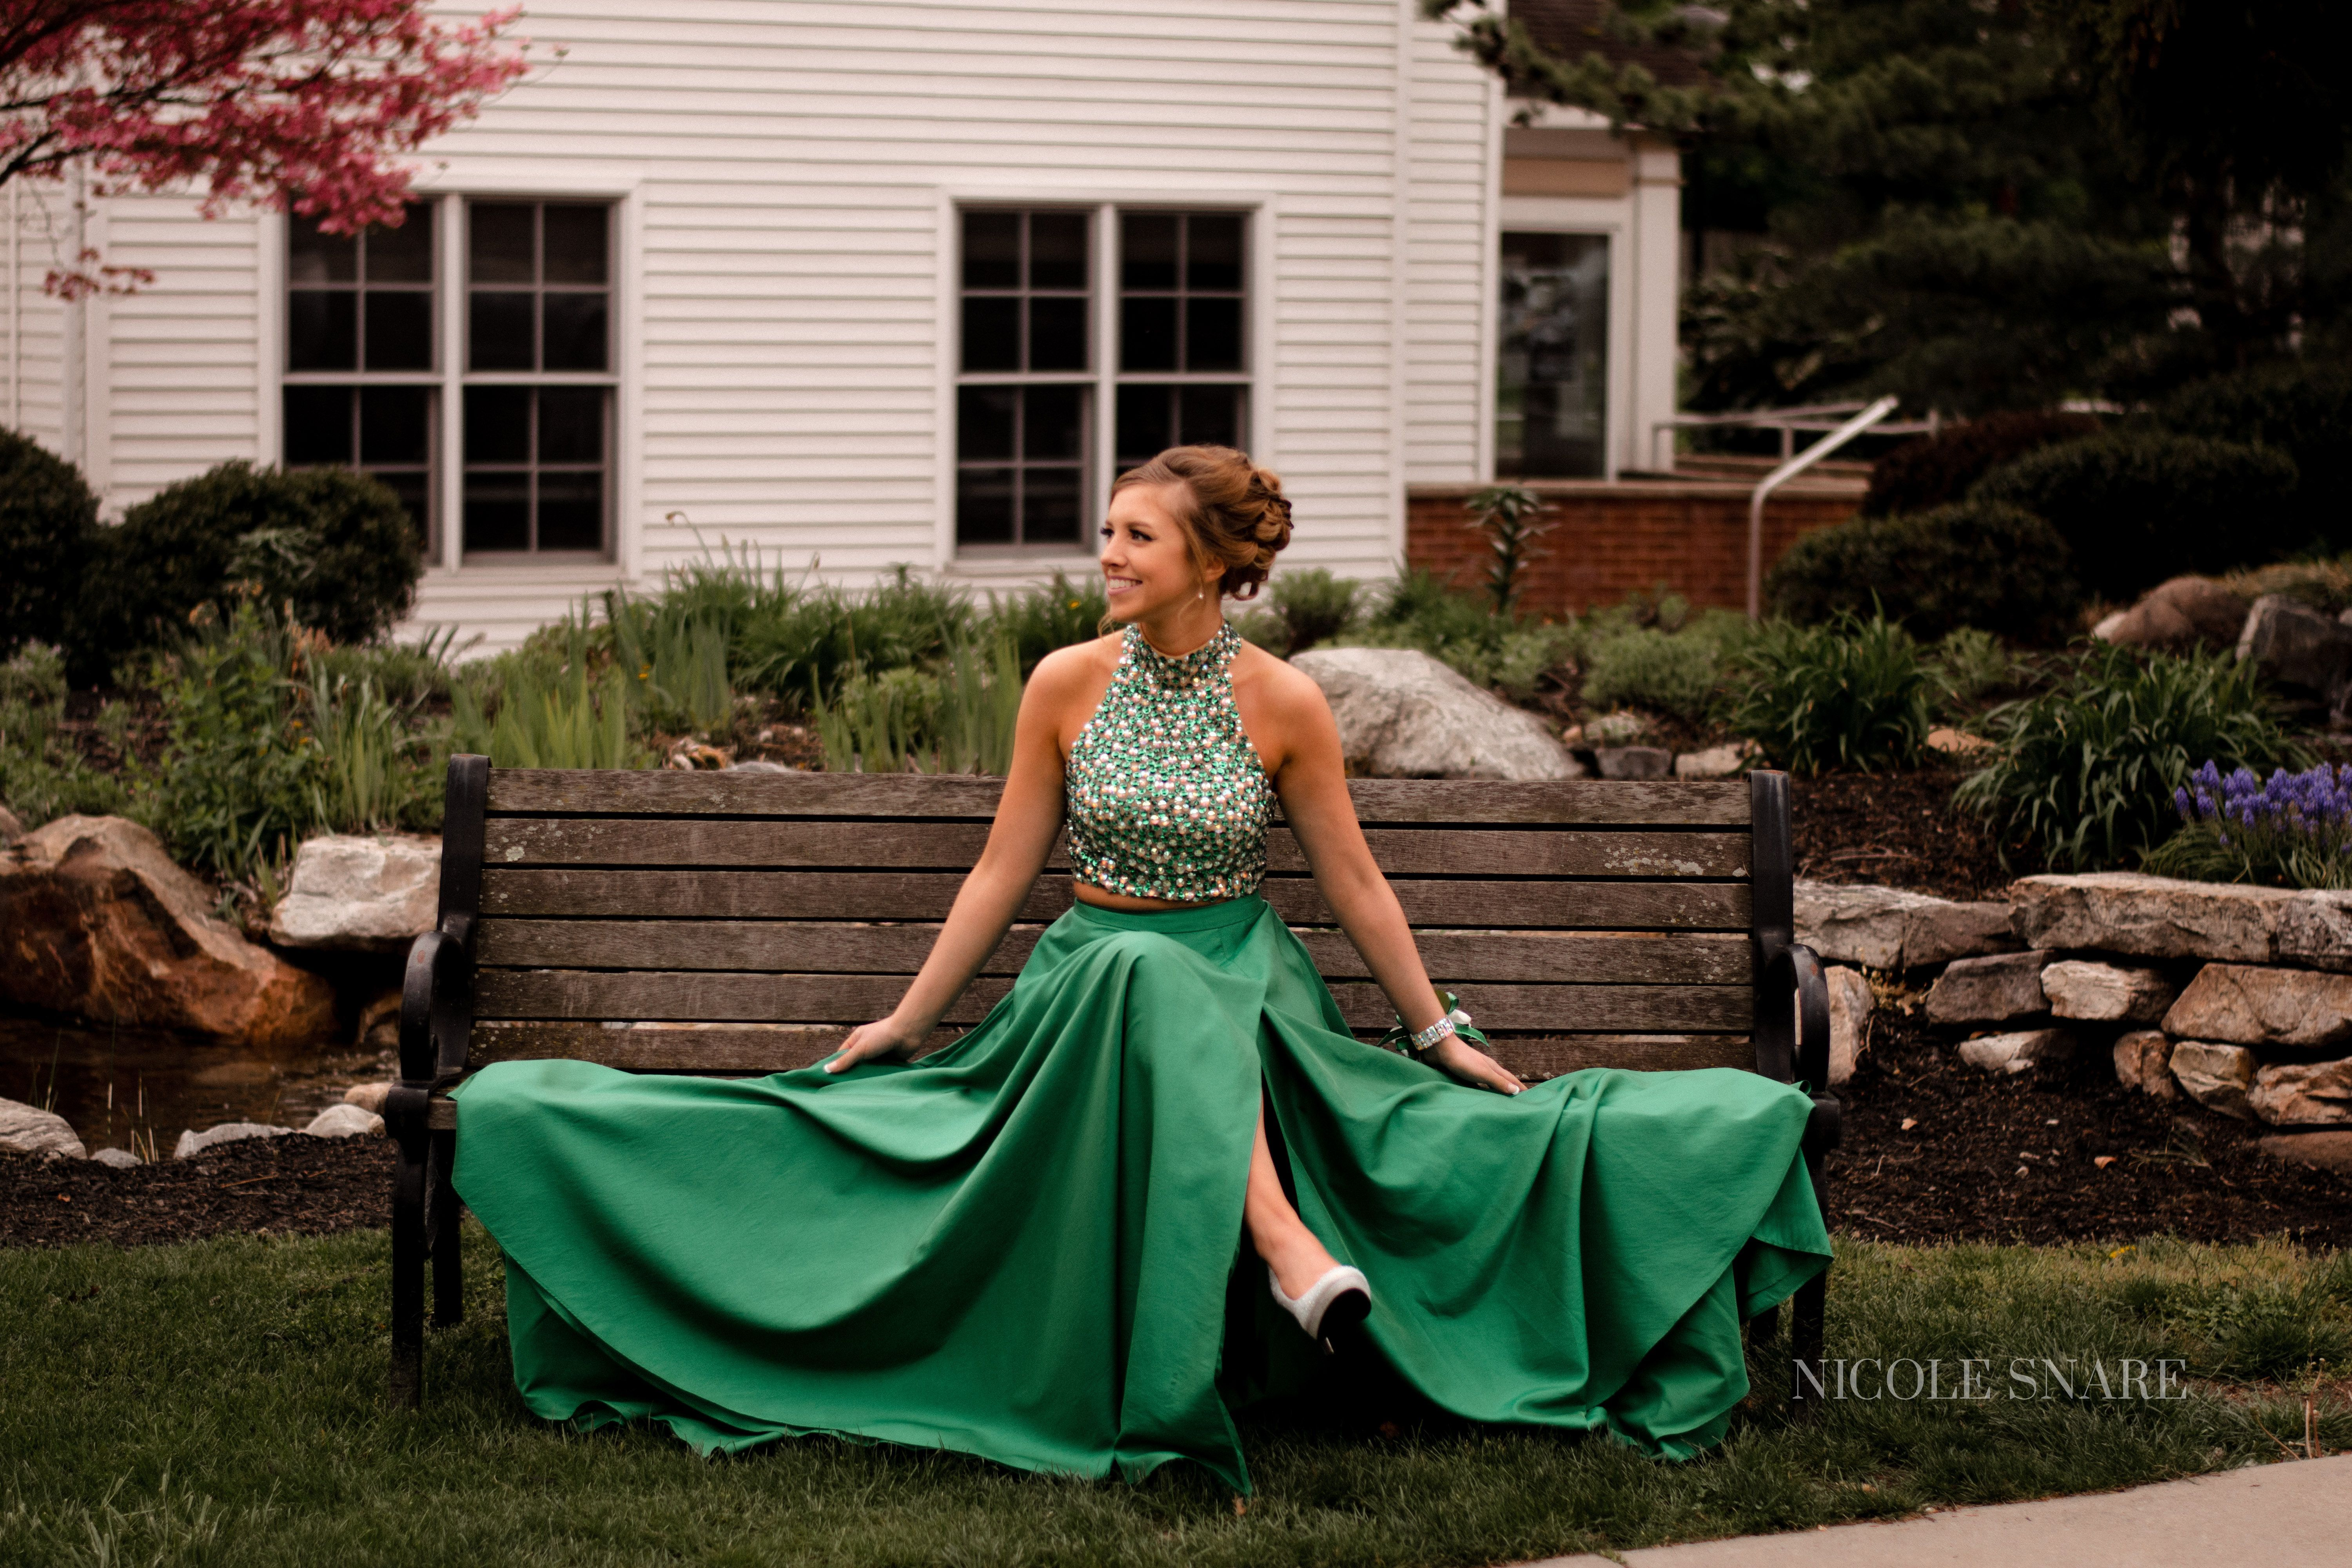 Prom 2017 - prom poses, prom dresses, nicole snare photography #prompicturescouples #promphotographyposes